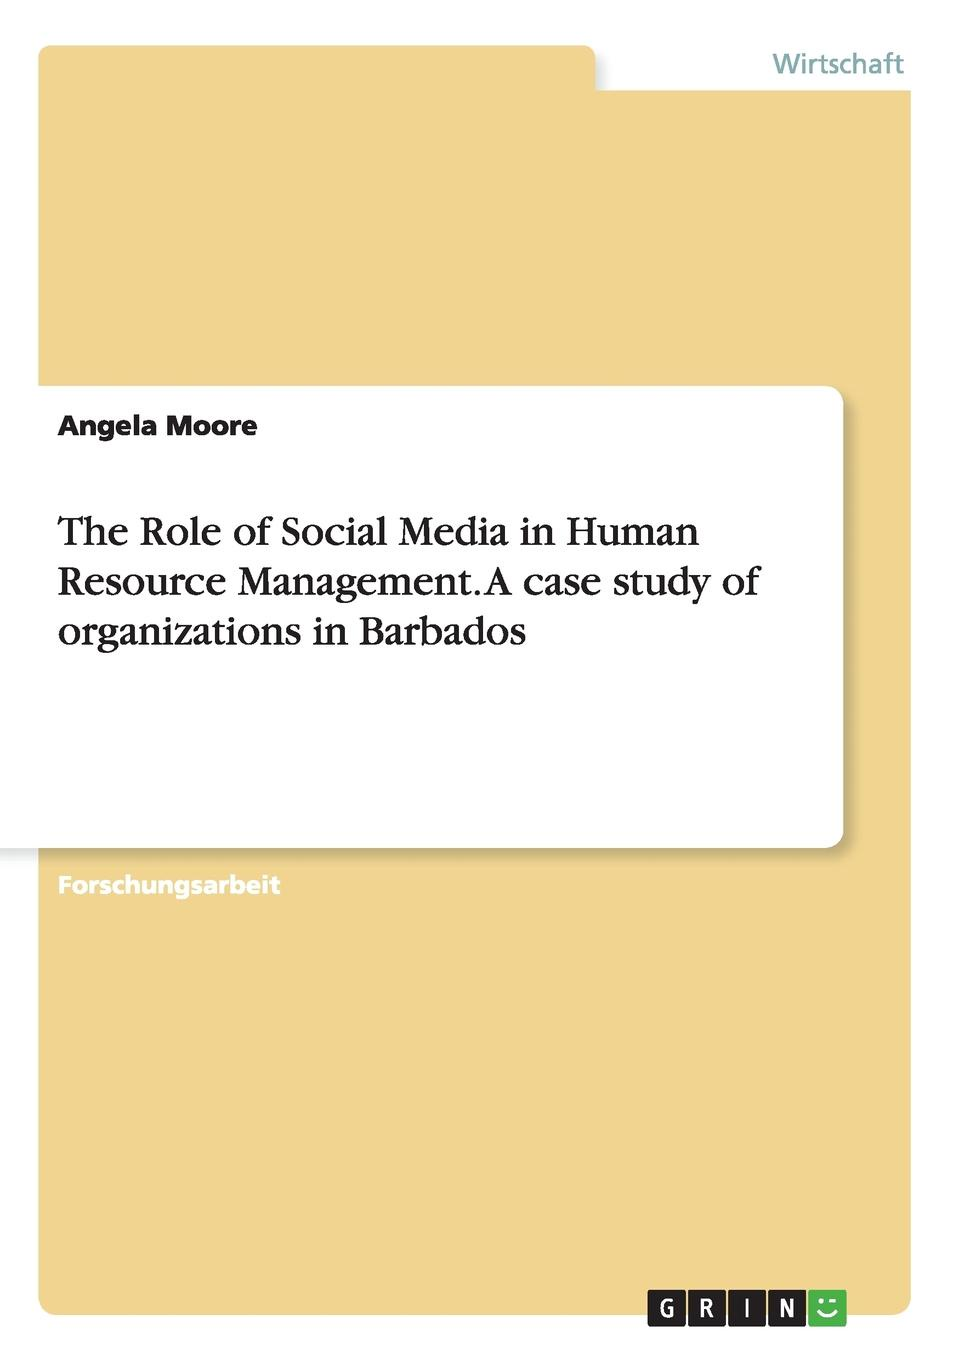 Angela Moore The Role of Social Media in Human Resource Management. A case study of organizations in Barbados heather carpenter the talent development platform putting people first in social change organizations